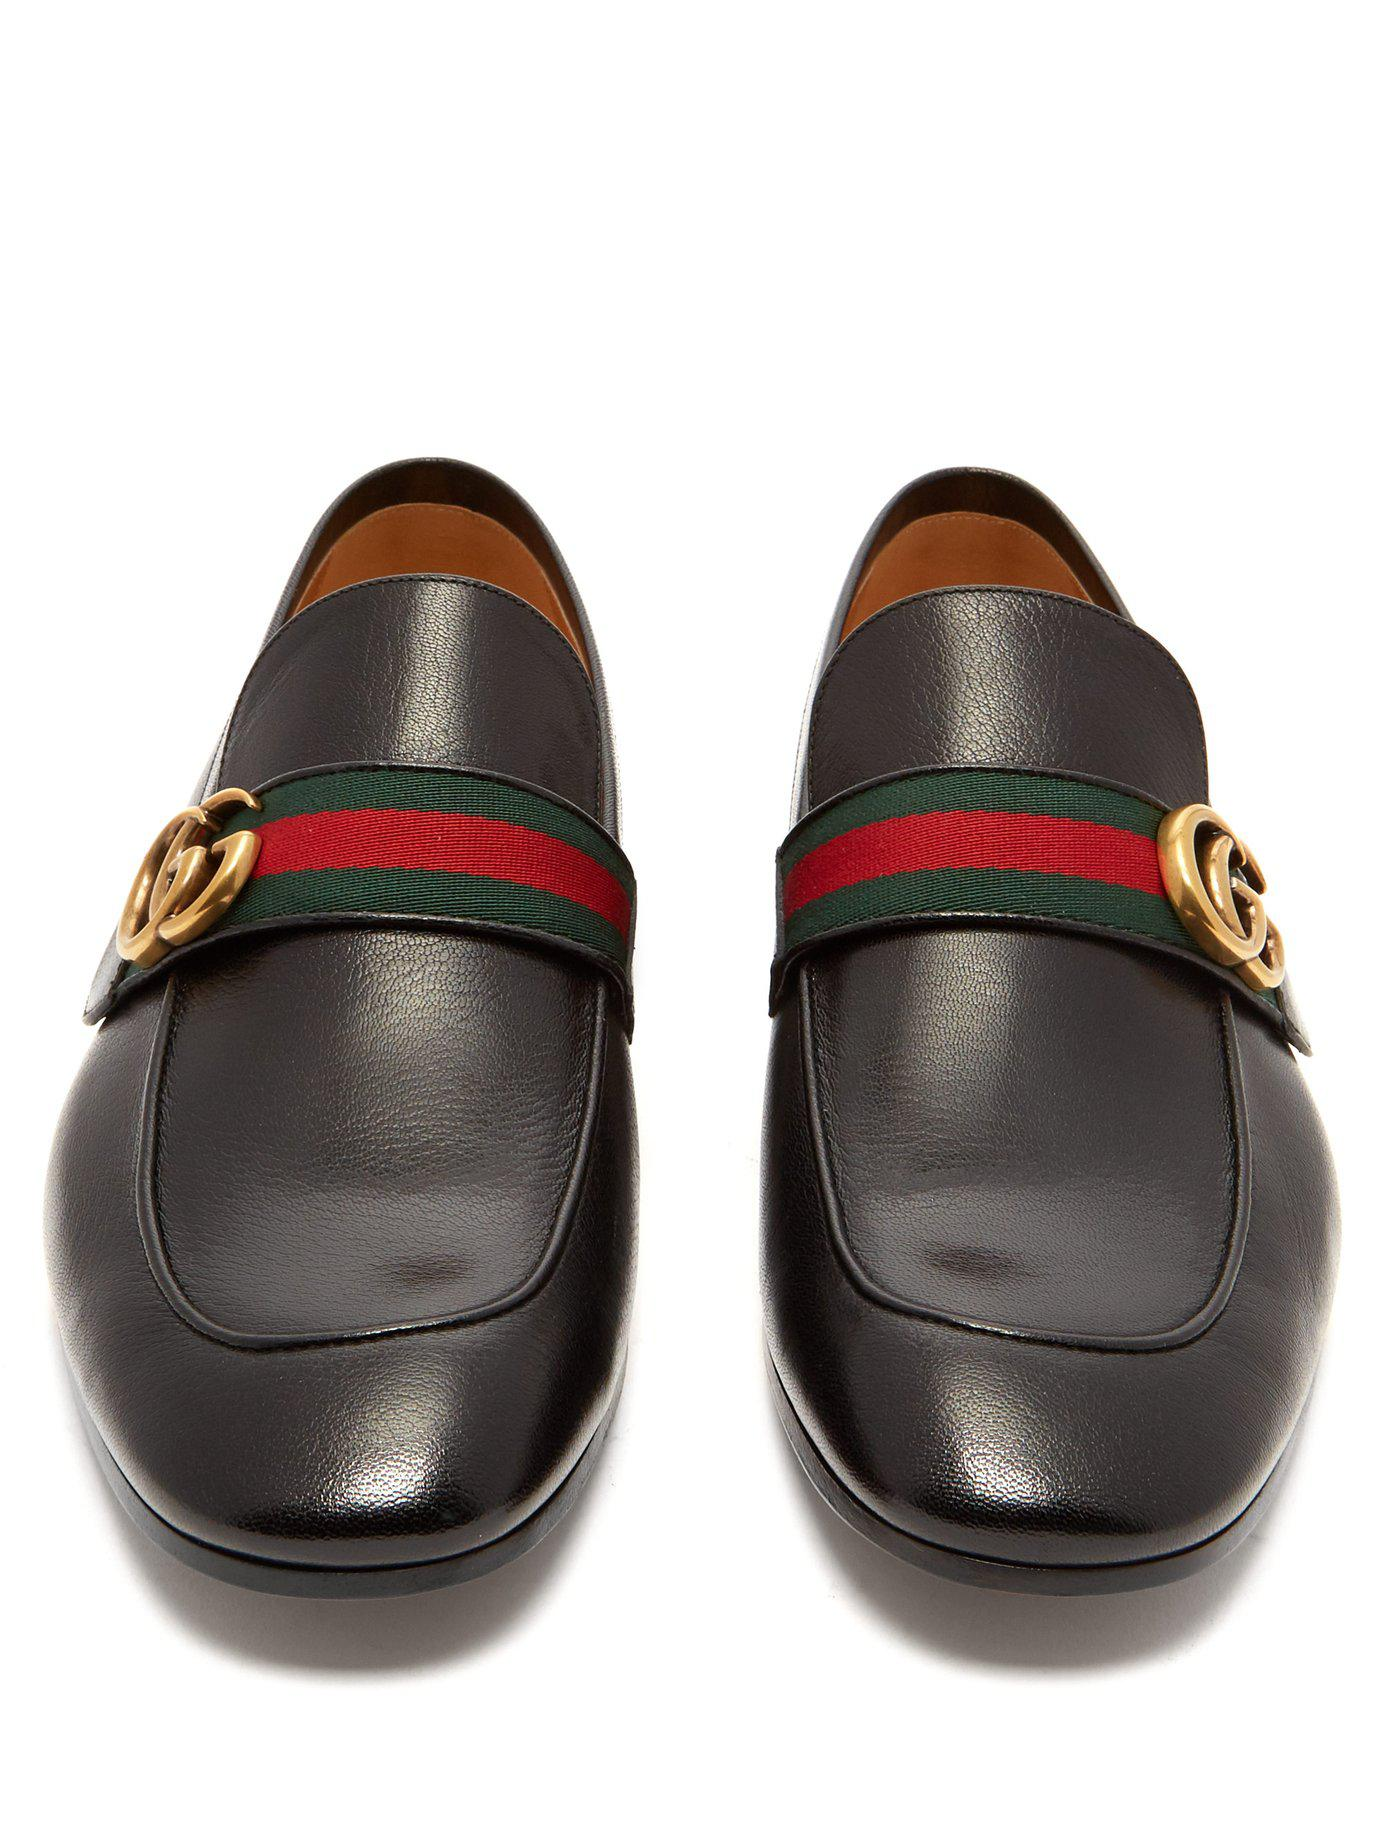 fd17a169274 Gucci - Black Donnie Gg Web Stripe Leather Loafers for Men - Lyst. View  fullscreen